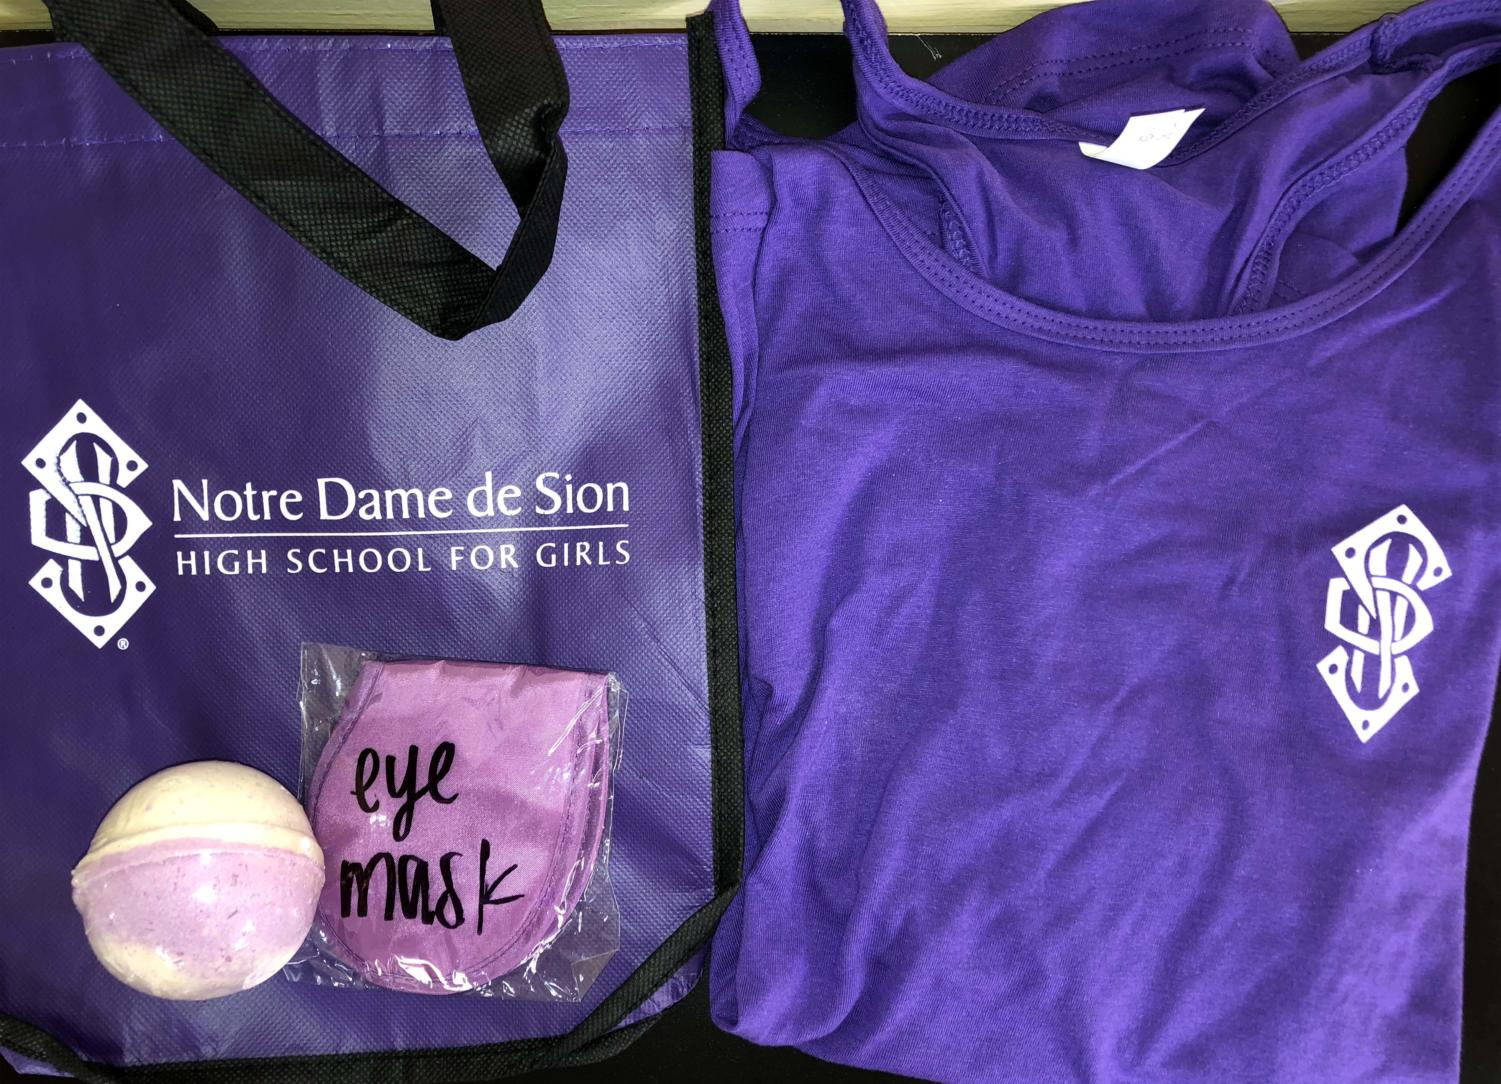 "At the open house families will have an opportunity to meet with Sion's counselors and receive a complimentary wellness bag filled with a tank, bath bomb, and eye mask.  ""We included the wellness bags to show that the counselors help take care of you all and we want you to take care of yourselves as well,"" admissions director Katie Glatz said."